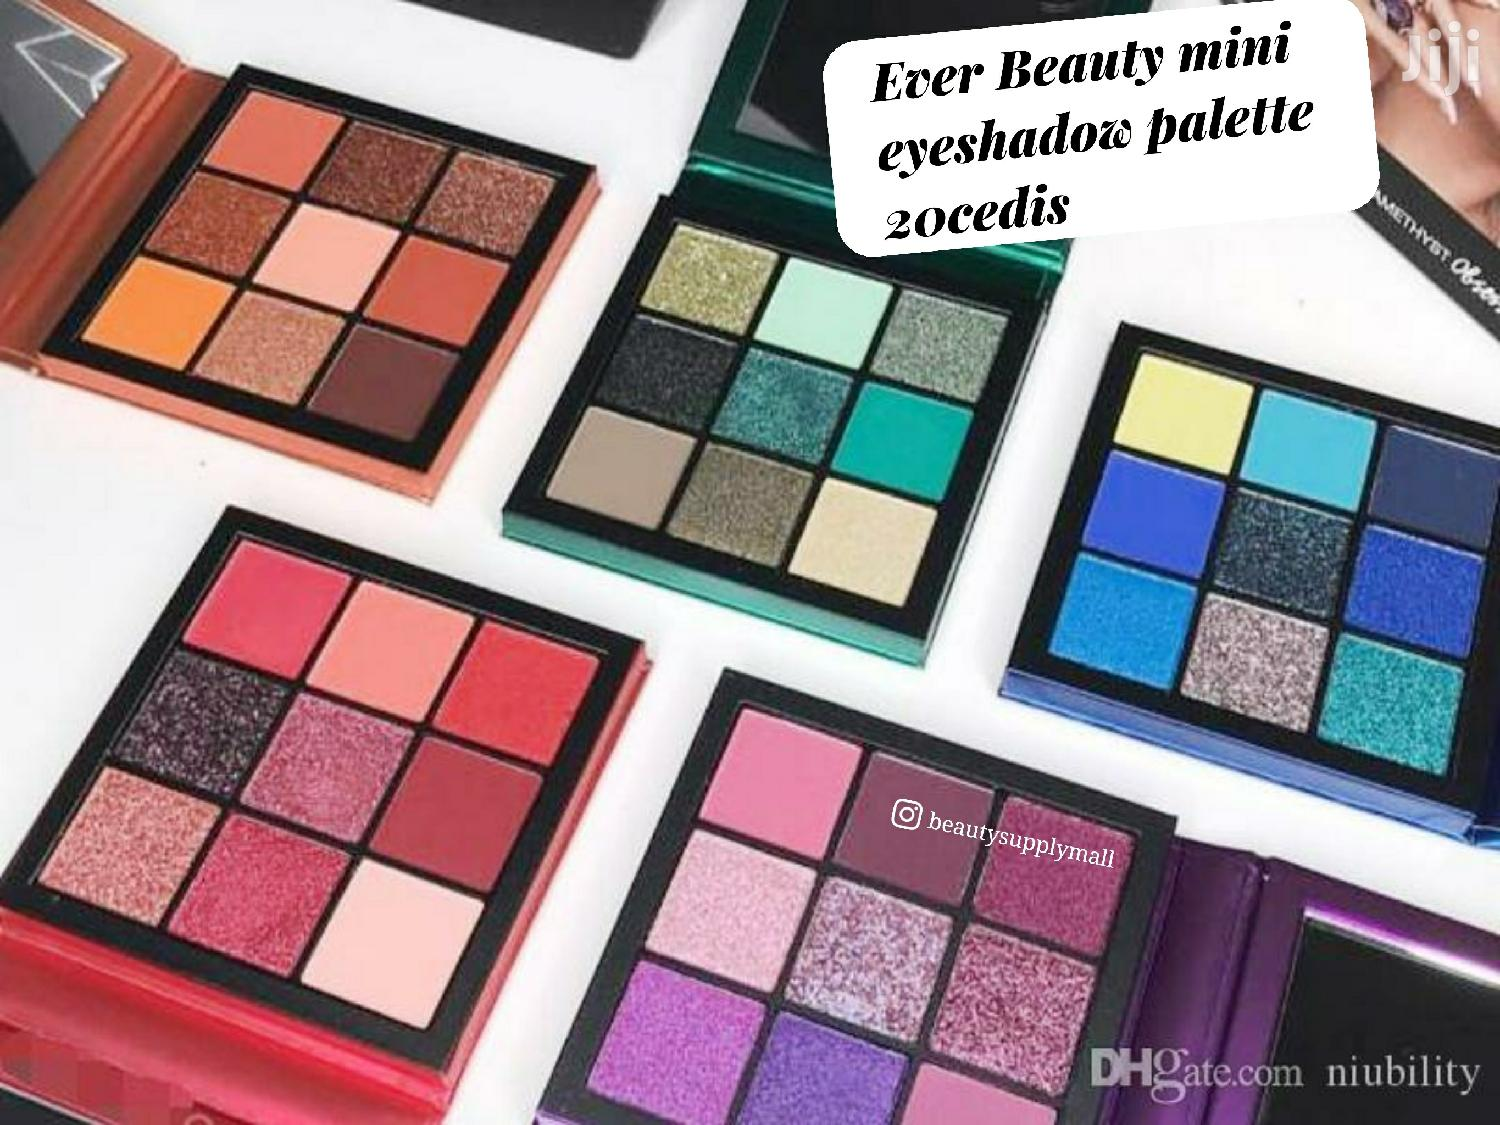 Archive: Ever Beauty Mini Eyeshadow Palette